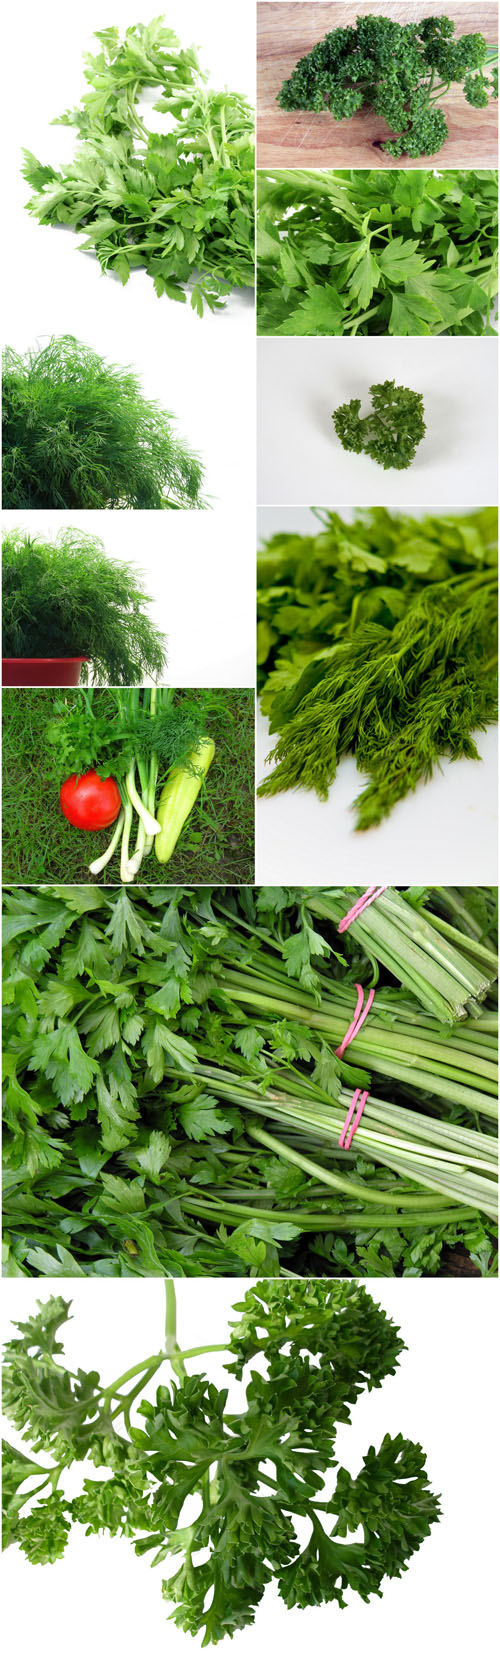 Photo Cliparts - Parsley and dill